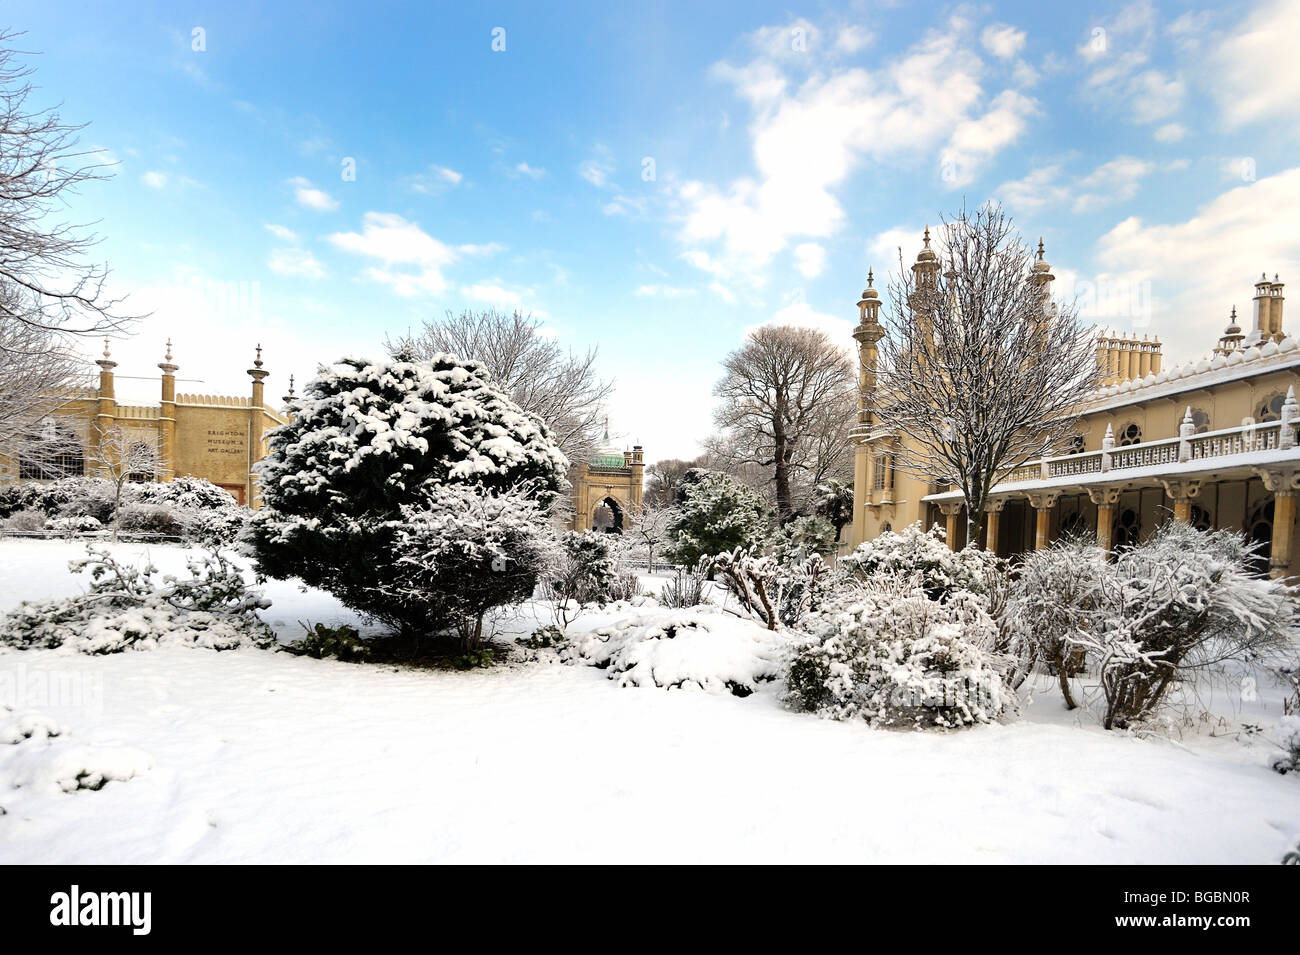 The gardens of Brighton Pavilion covered in snow Stock Photo